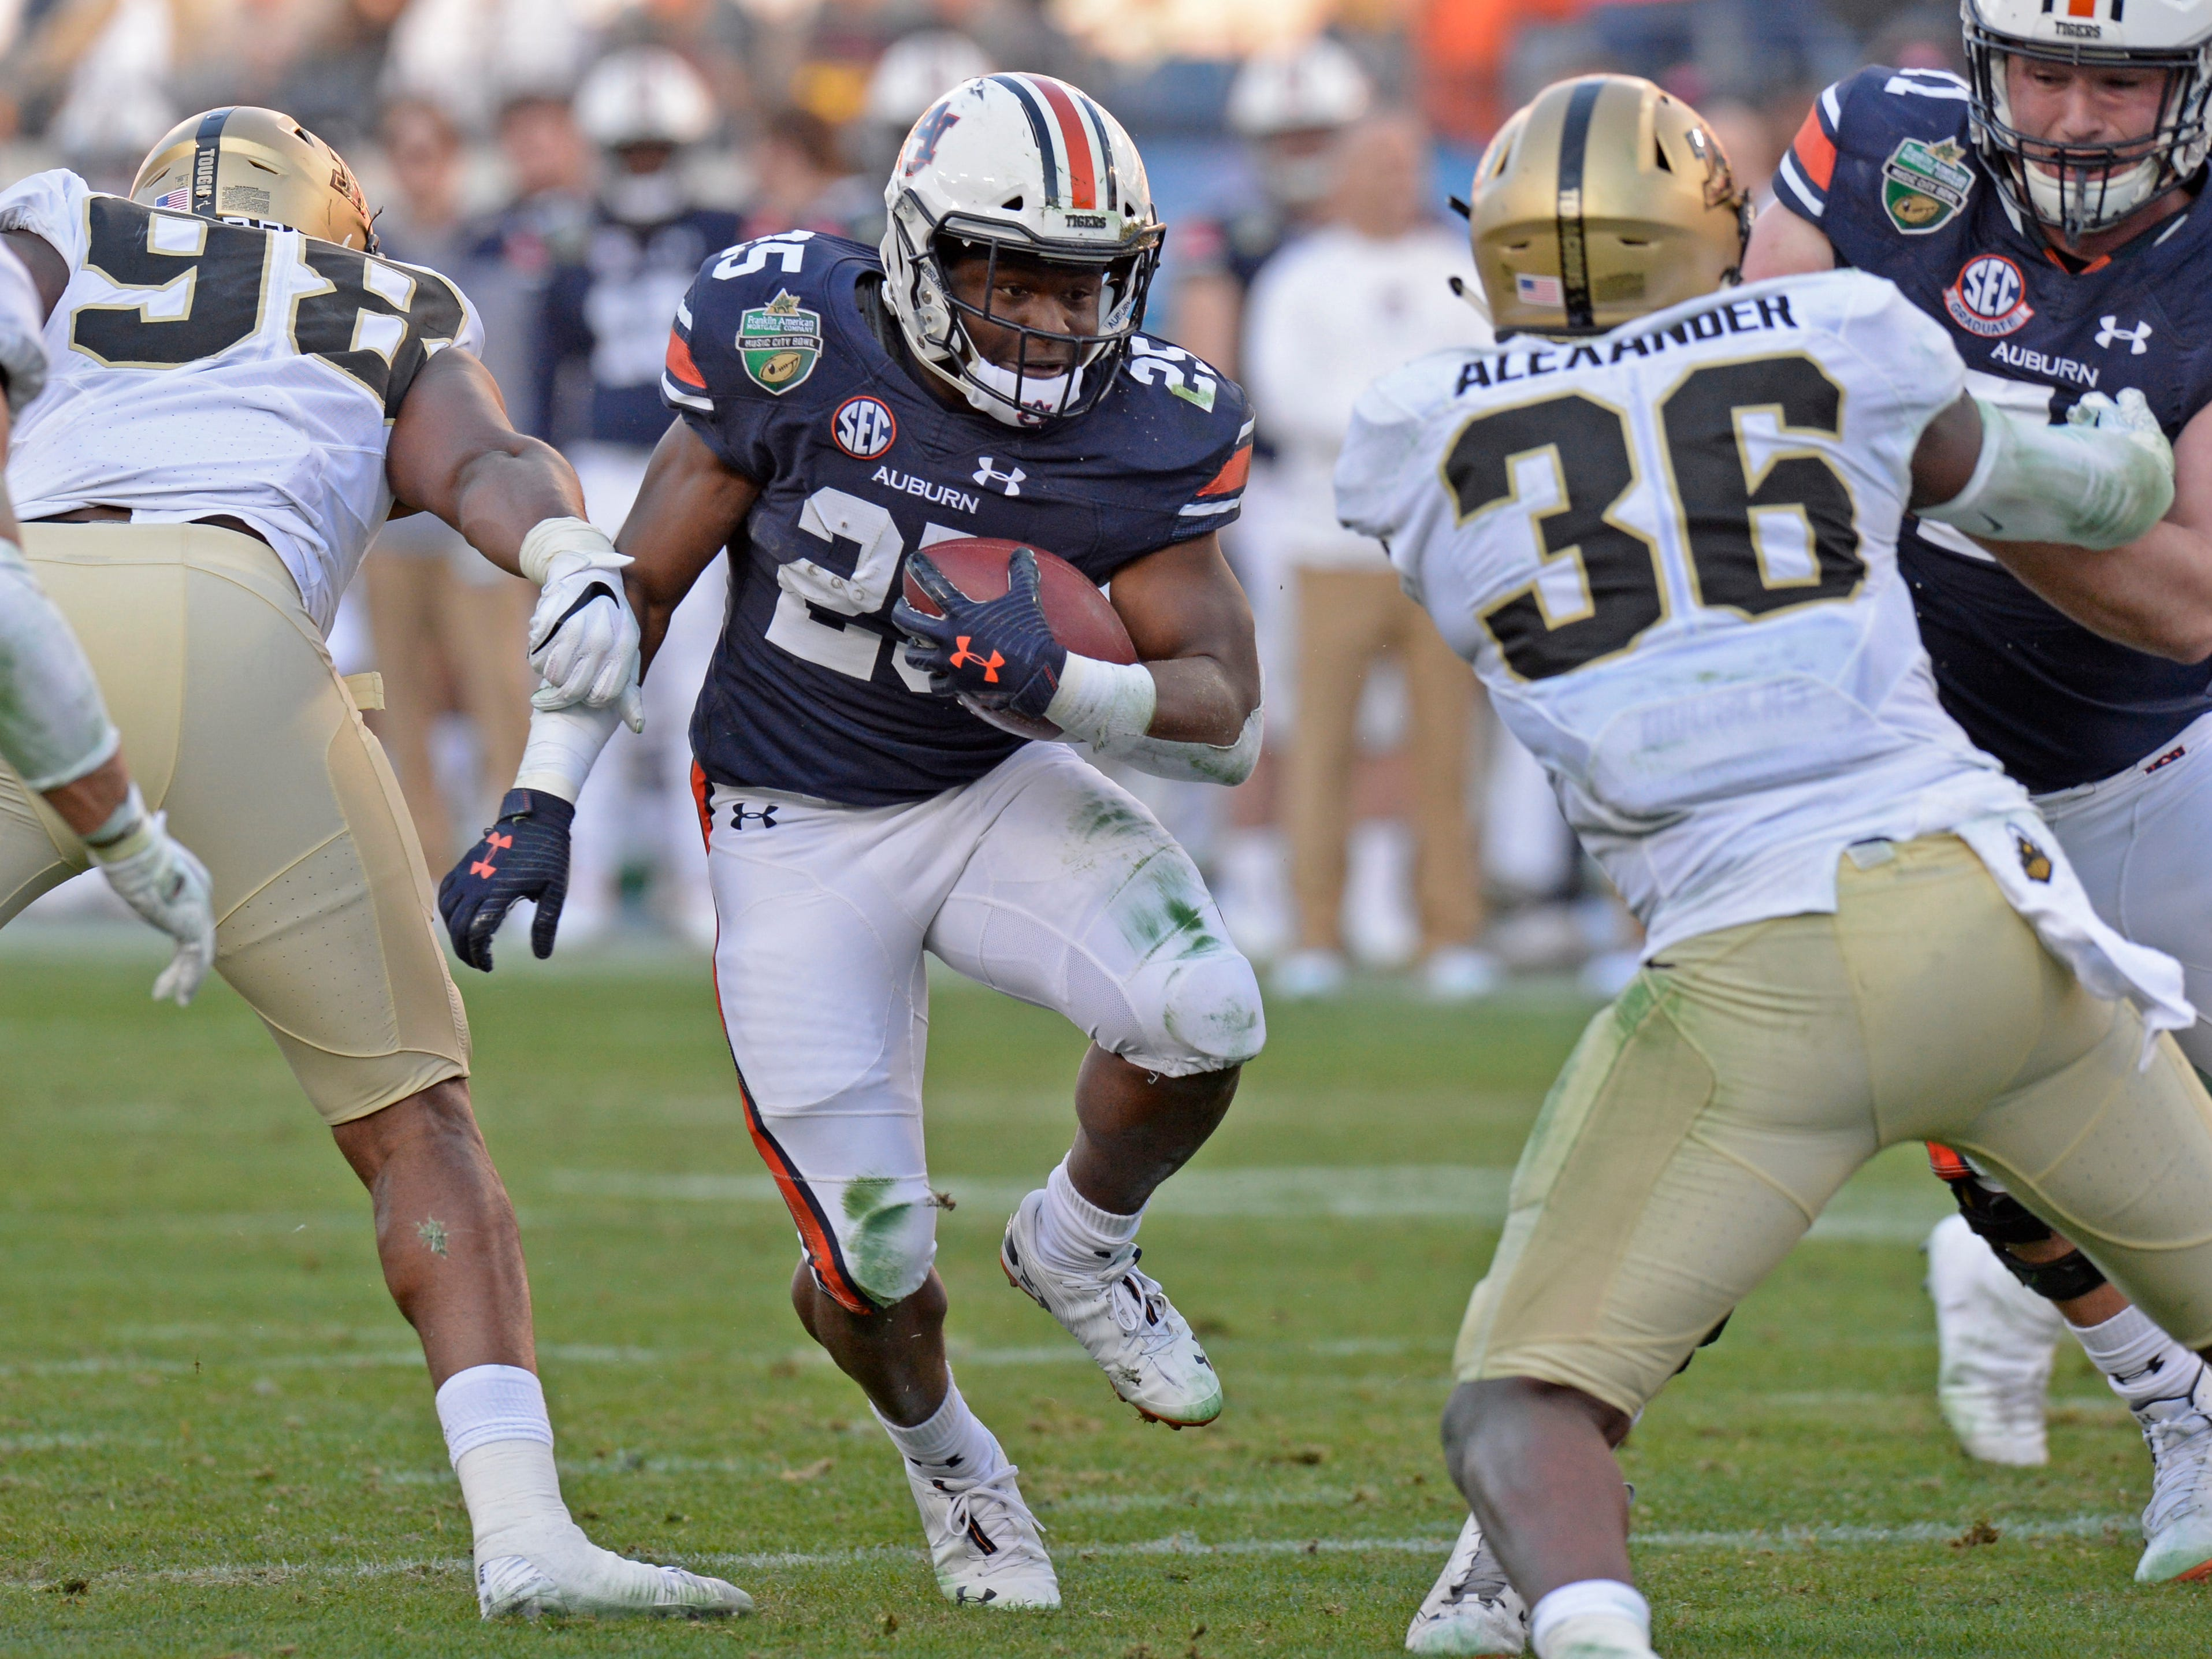 Auburn running back Shaun Shivers (25) gains yards in the third quarter of the Music City Bowl NCAA college football game Friday, Dec. 28, 2018, at Nissan Stadium in Nashville, Tenn.